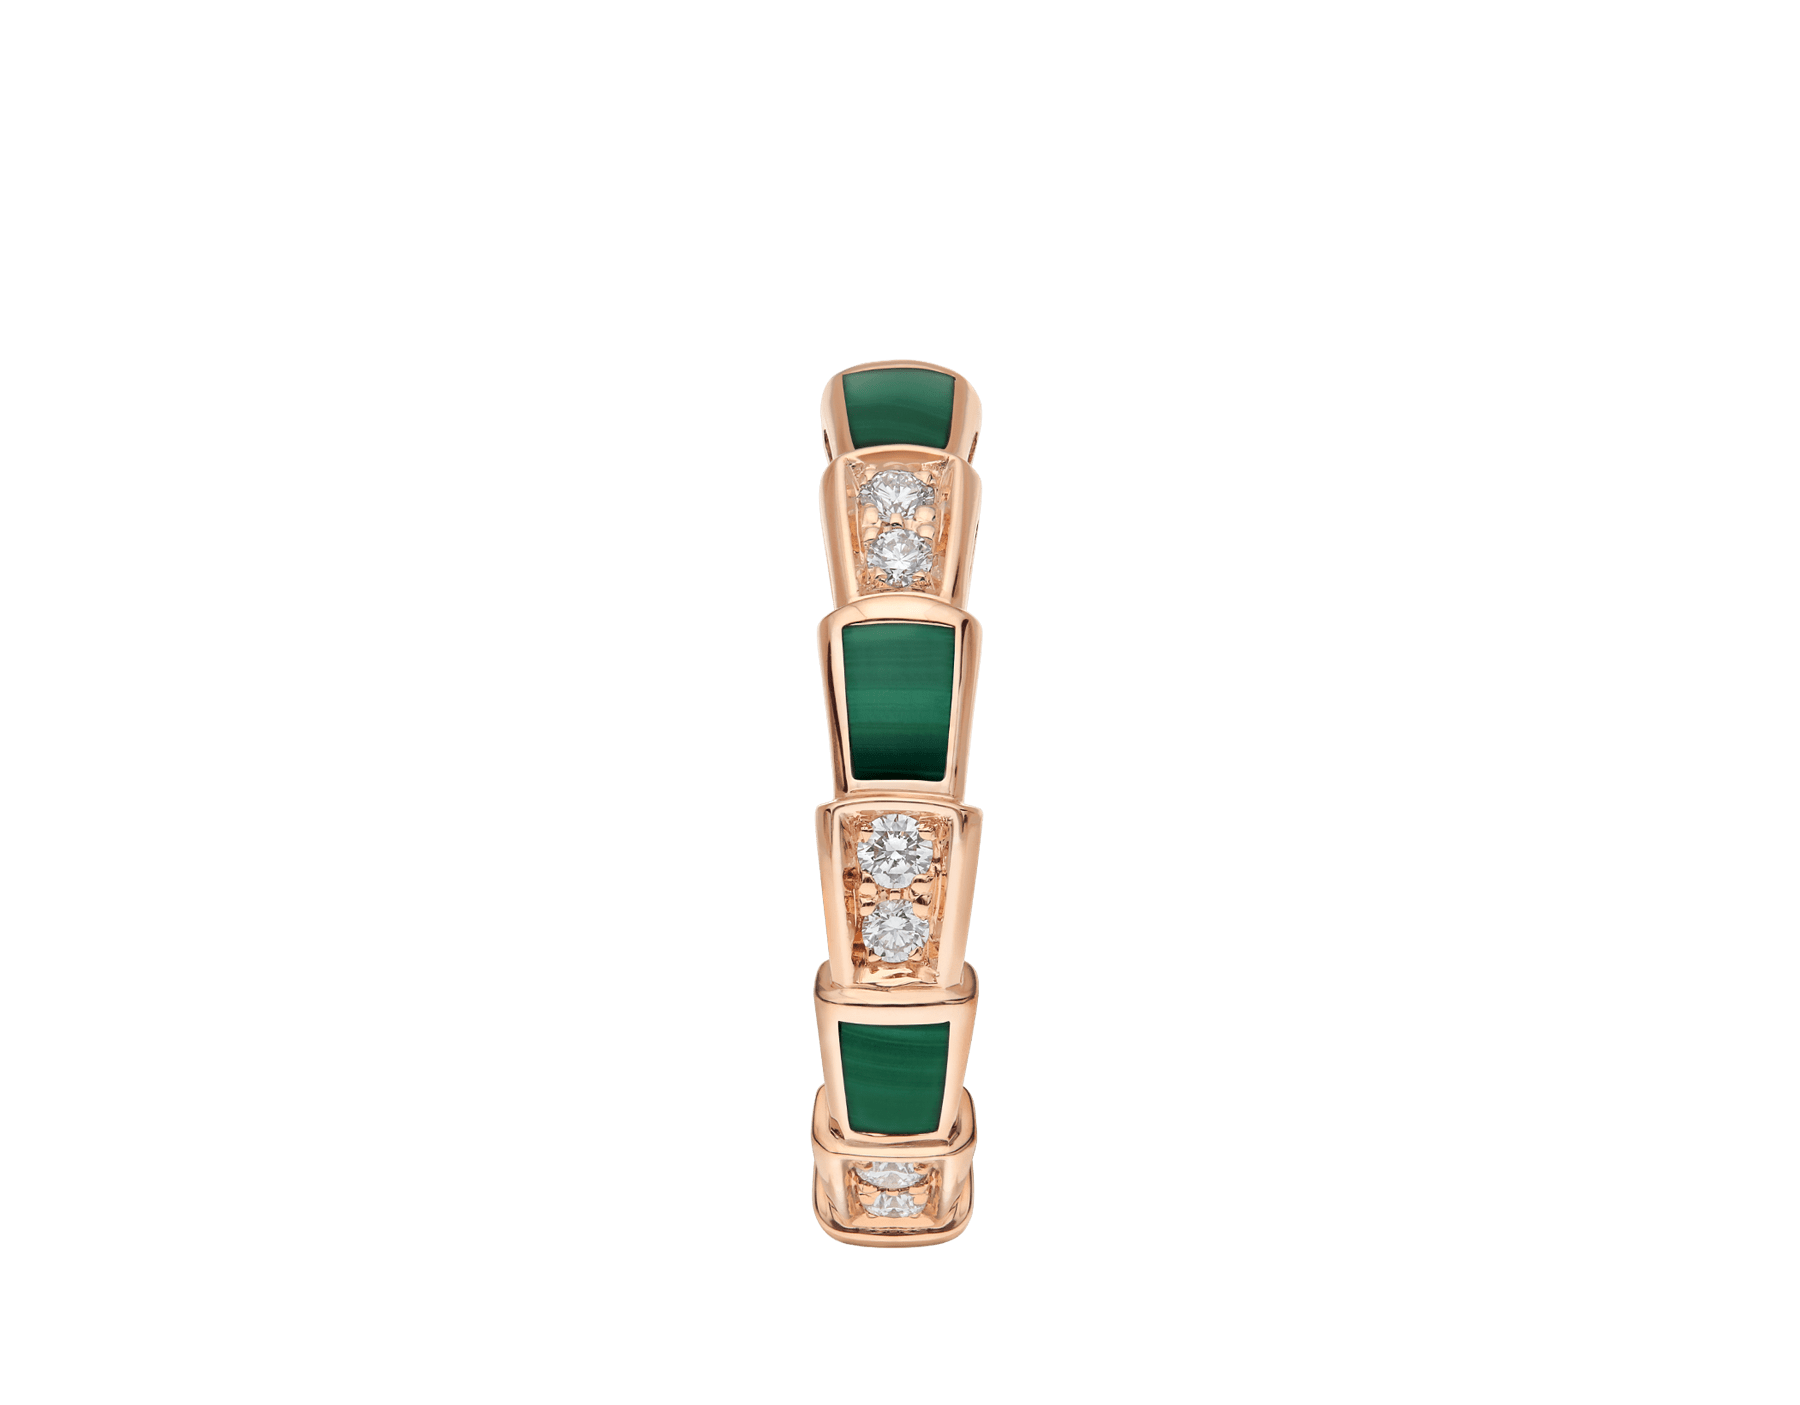 Serpenti 18 kt rose gold thin ring set with malachite elements and pavé diamonds (0.20 ct) AN858752 image 2